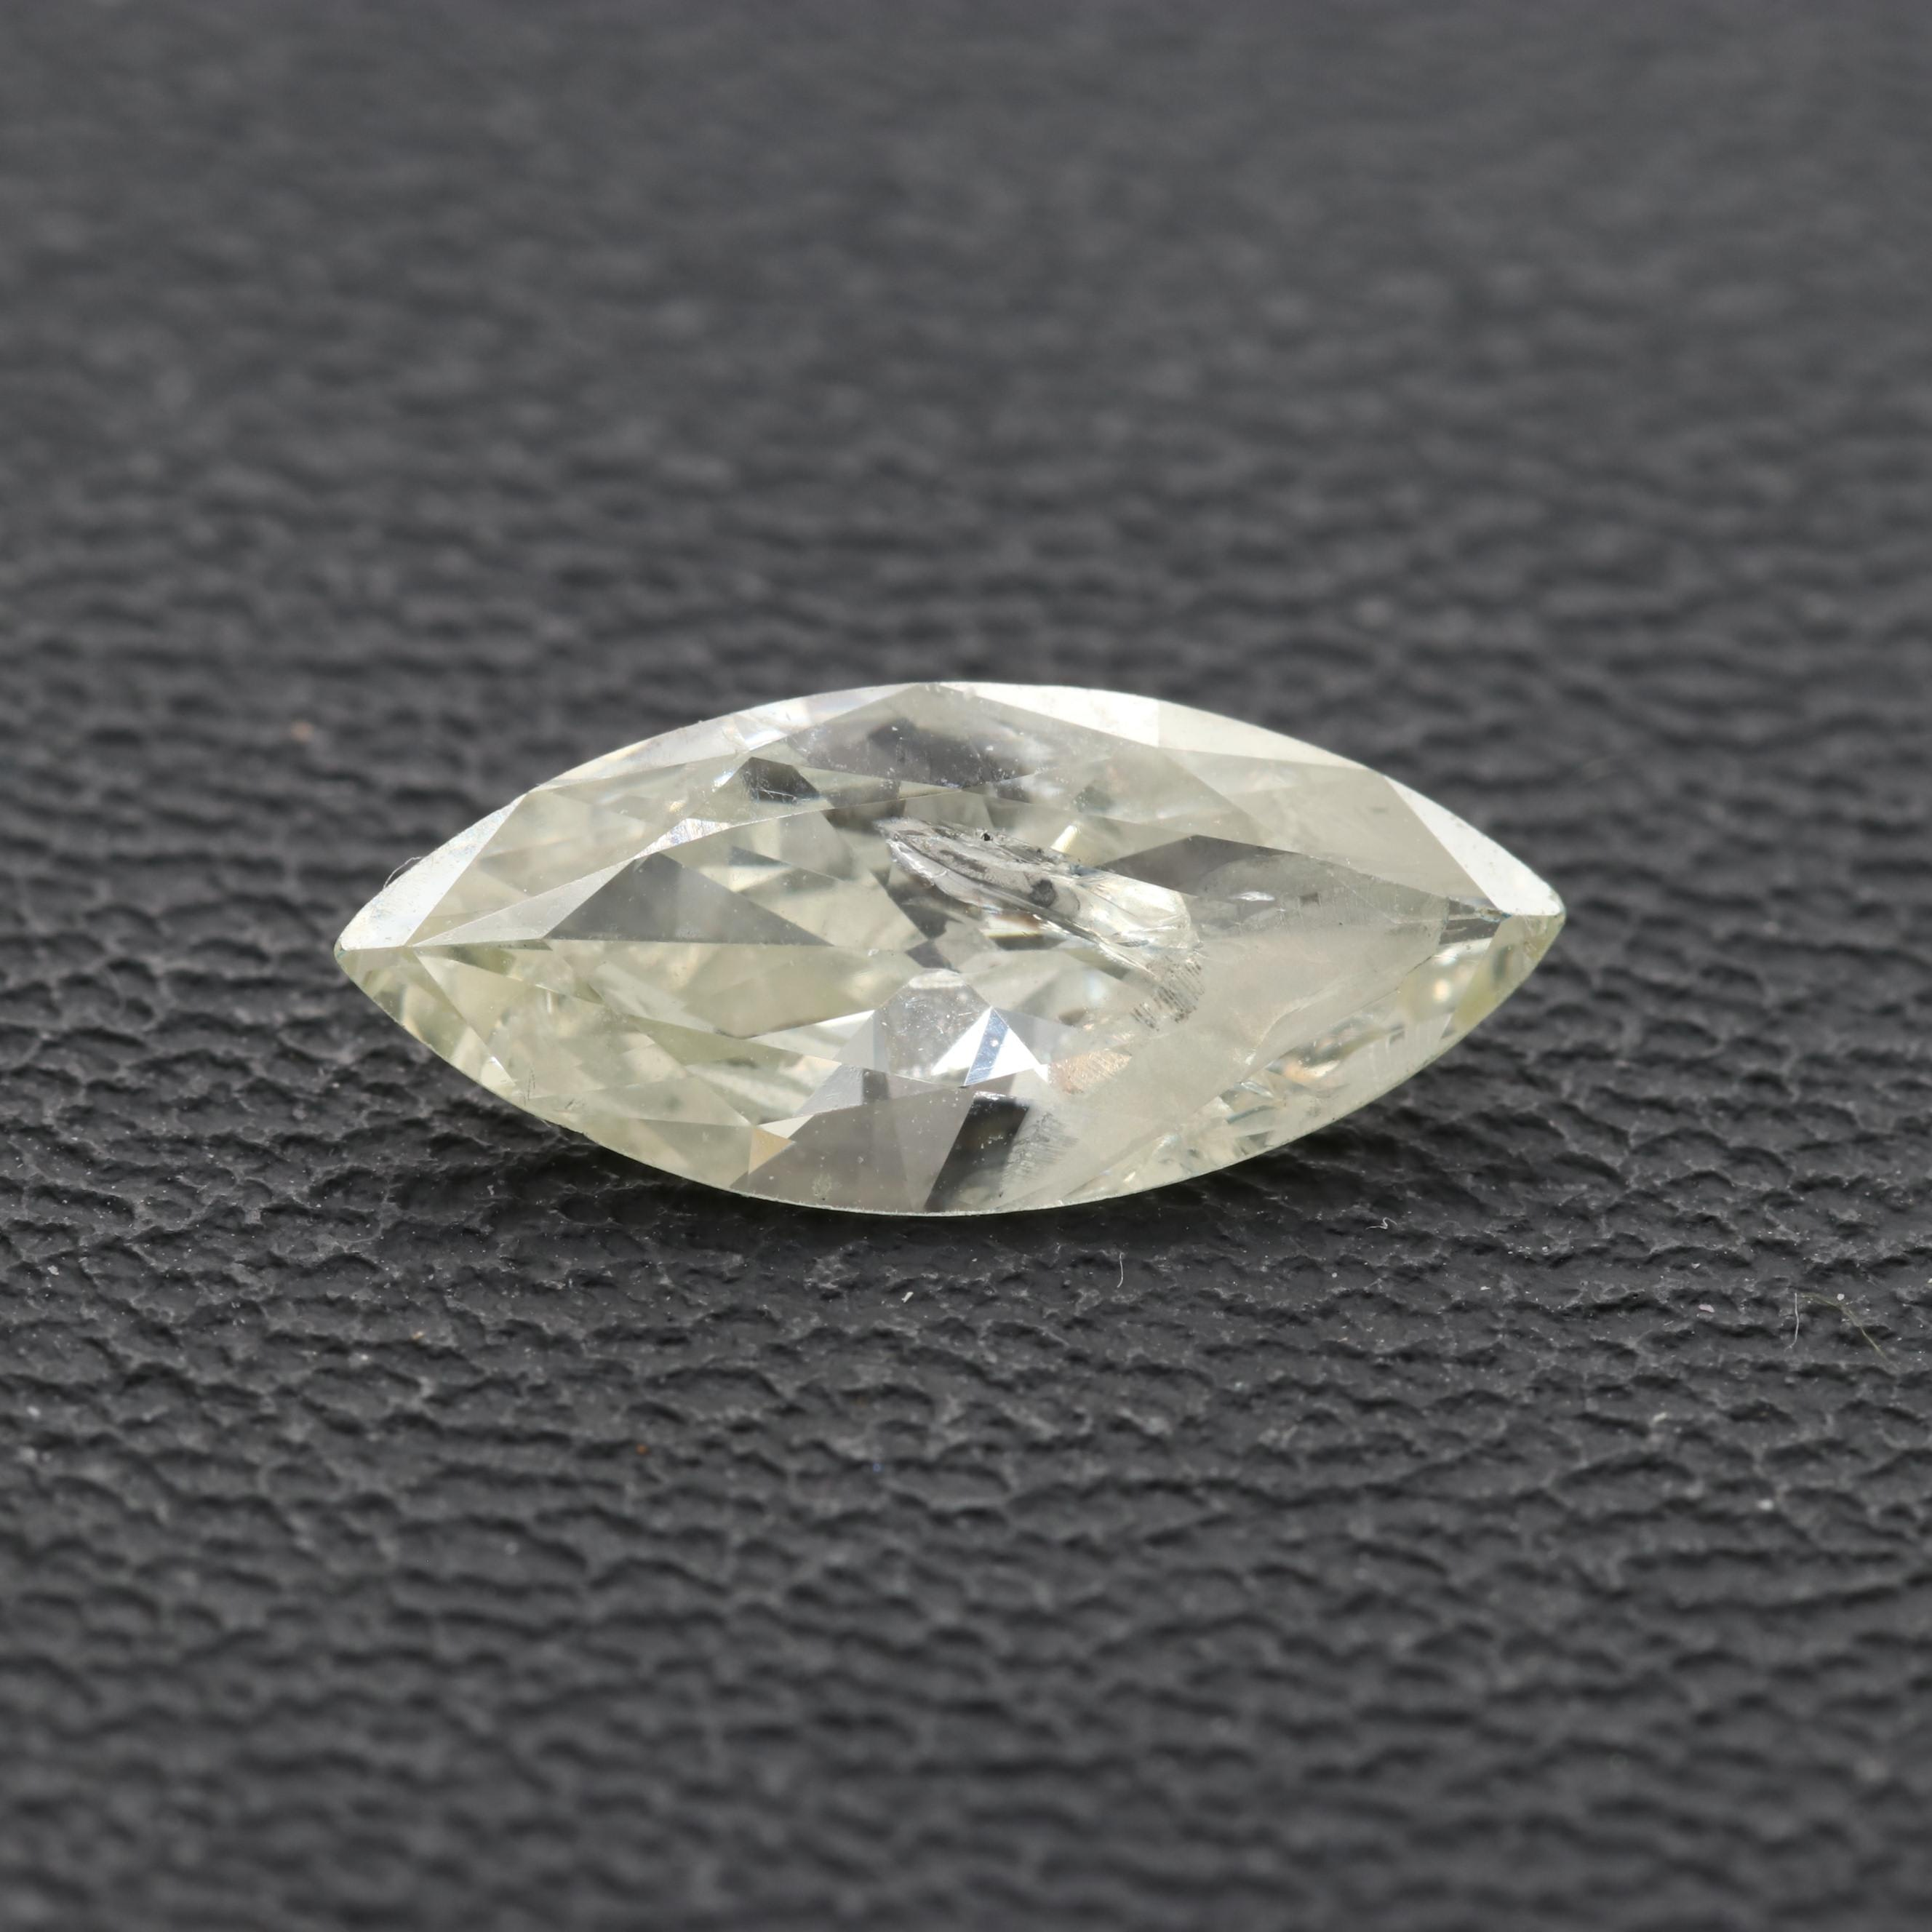 Loose 1.15 CT Marquise Faceted Diamond